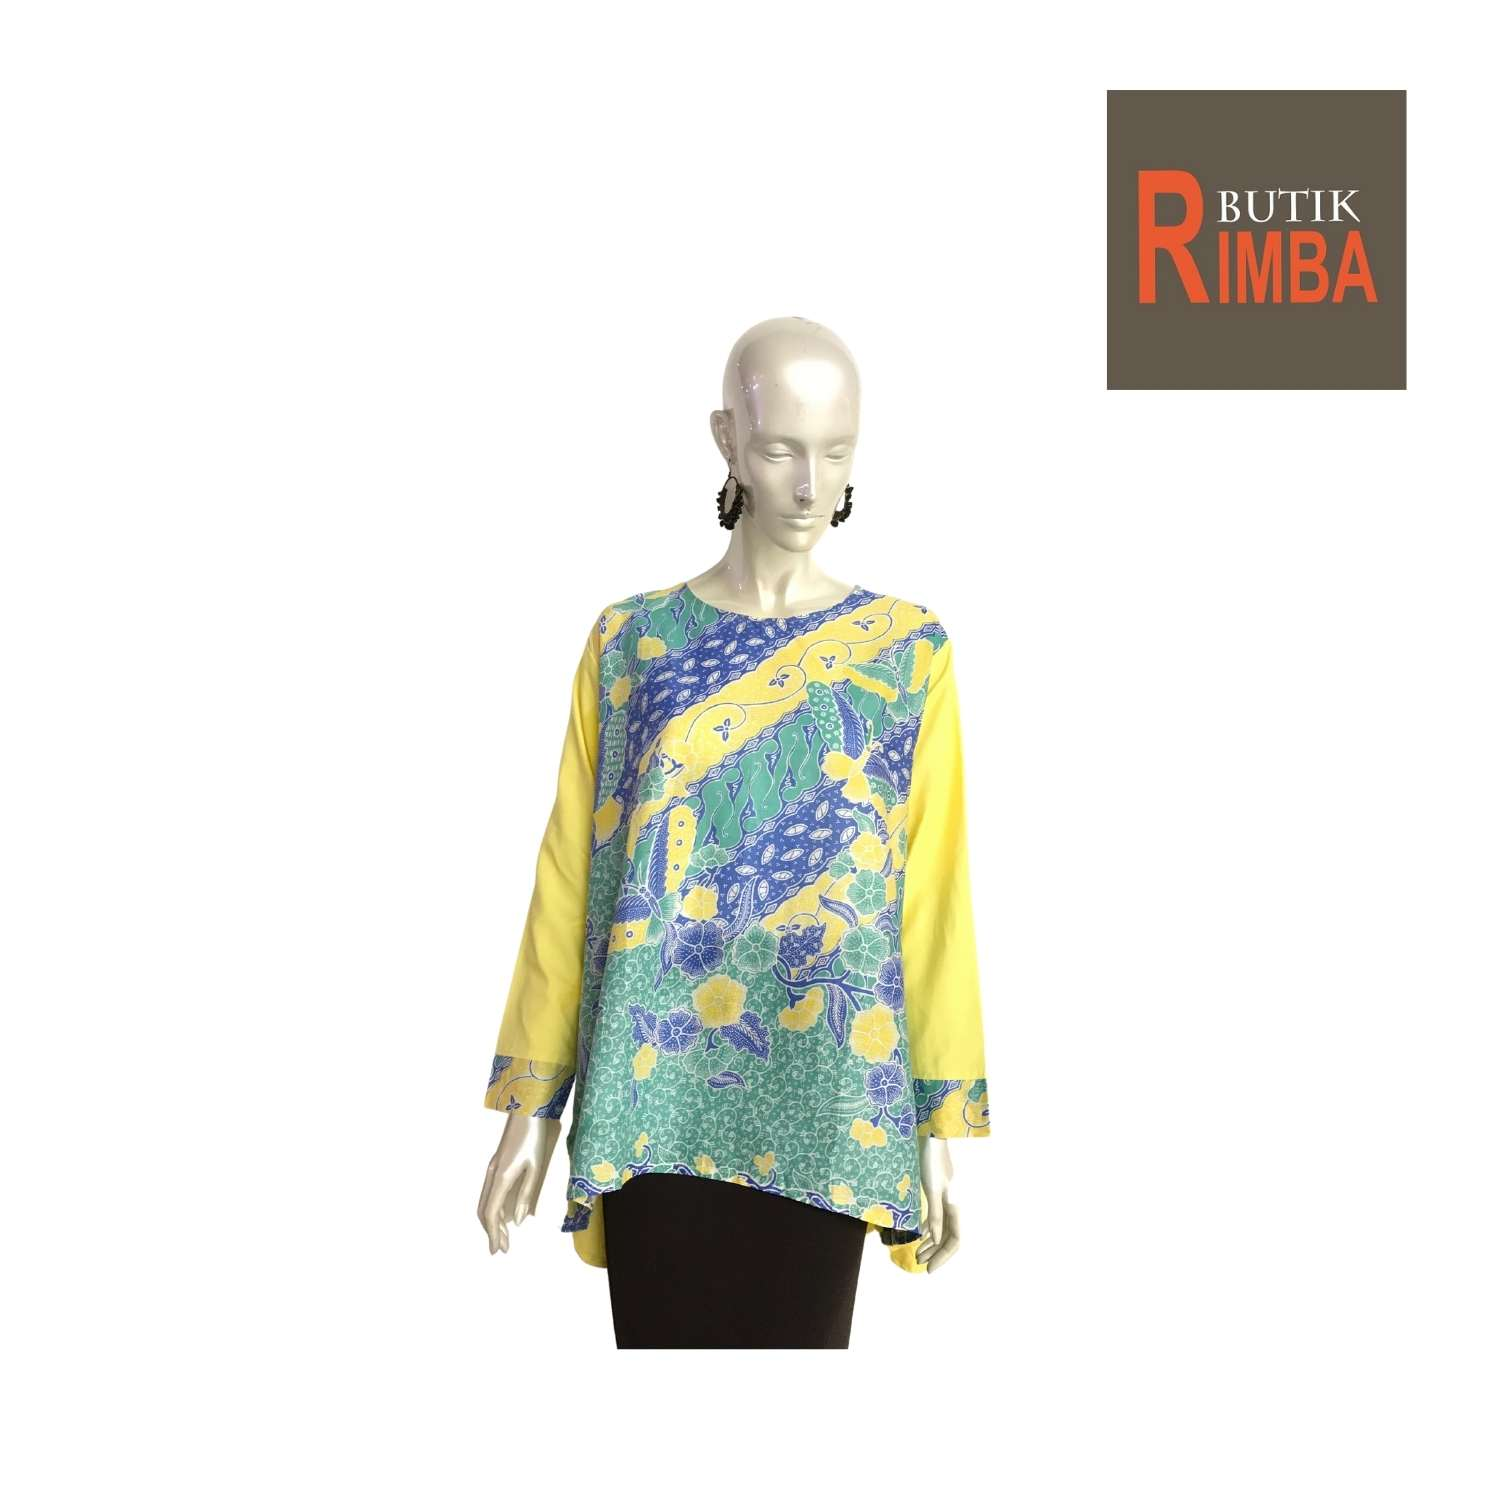 PLUS SIZE BATIK TOP FOR WOMEN WITH VIBRANT COLORS, EXCLUSIVE DESIGNS TRENDY AND COMFY 01